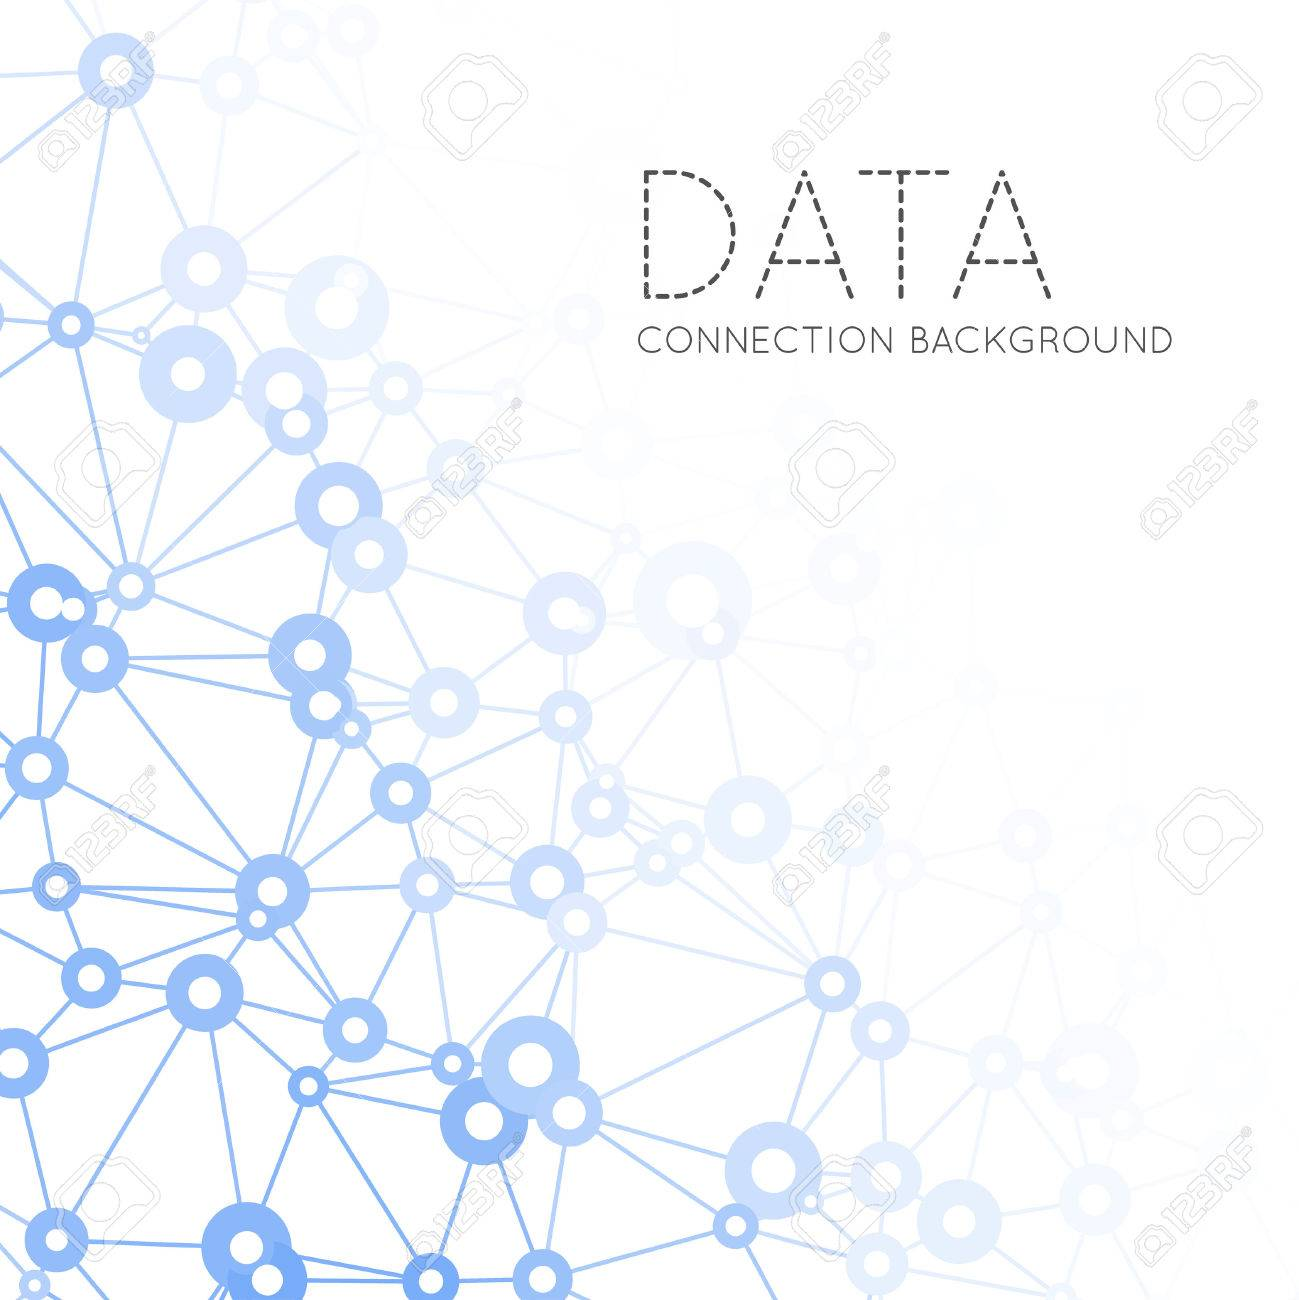 Dots with connections, triangles light background - 38614426